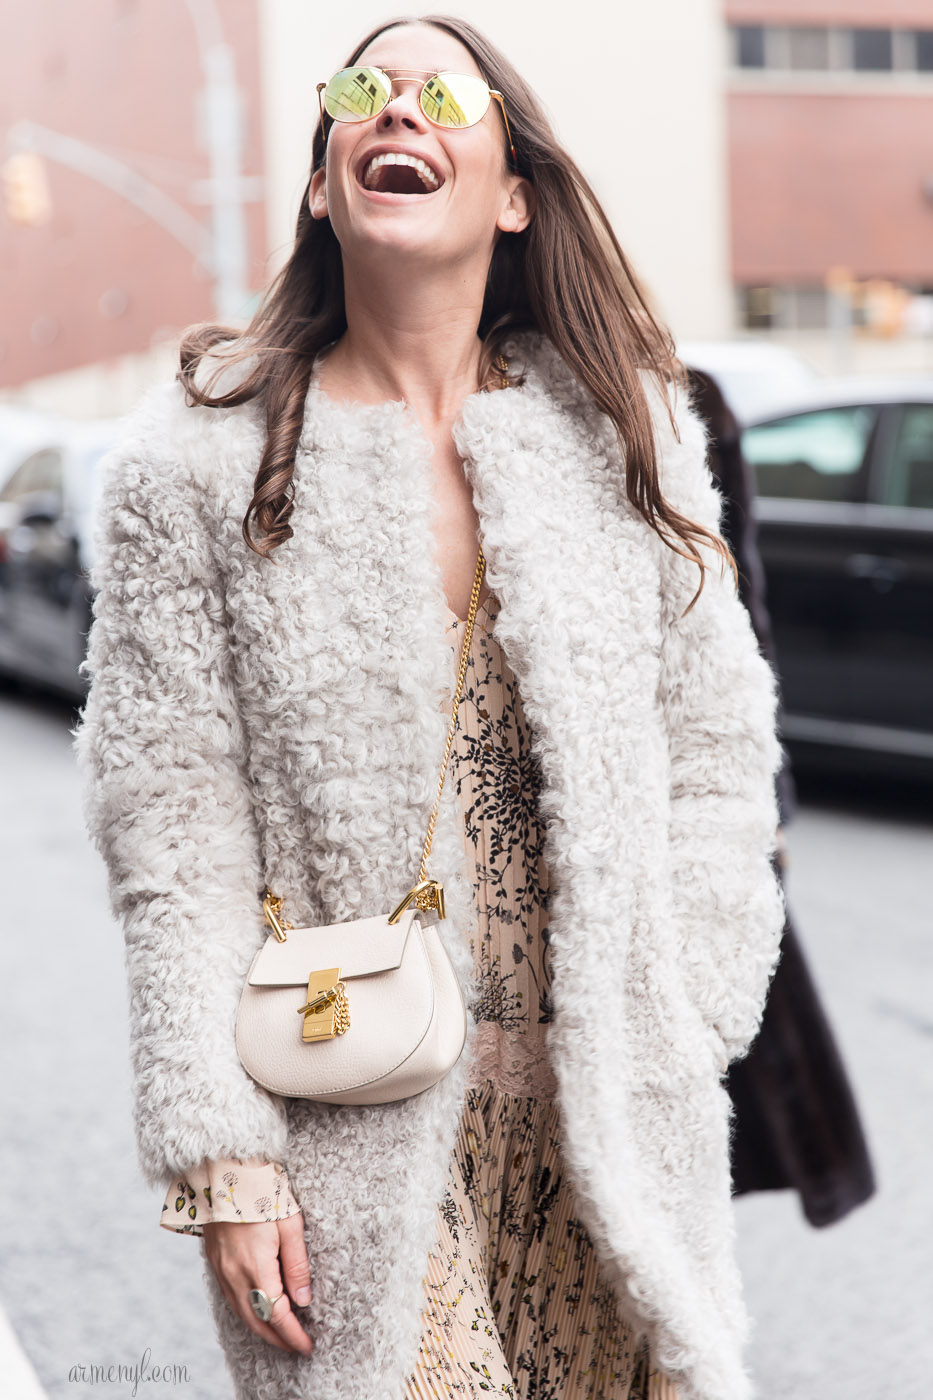 Amanda Alagem in Chloe Purse at NYFW featured in The best texture heavy looks at New York Fashion Week photographed by Armenyl.com